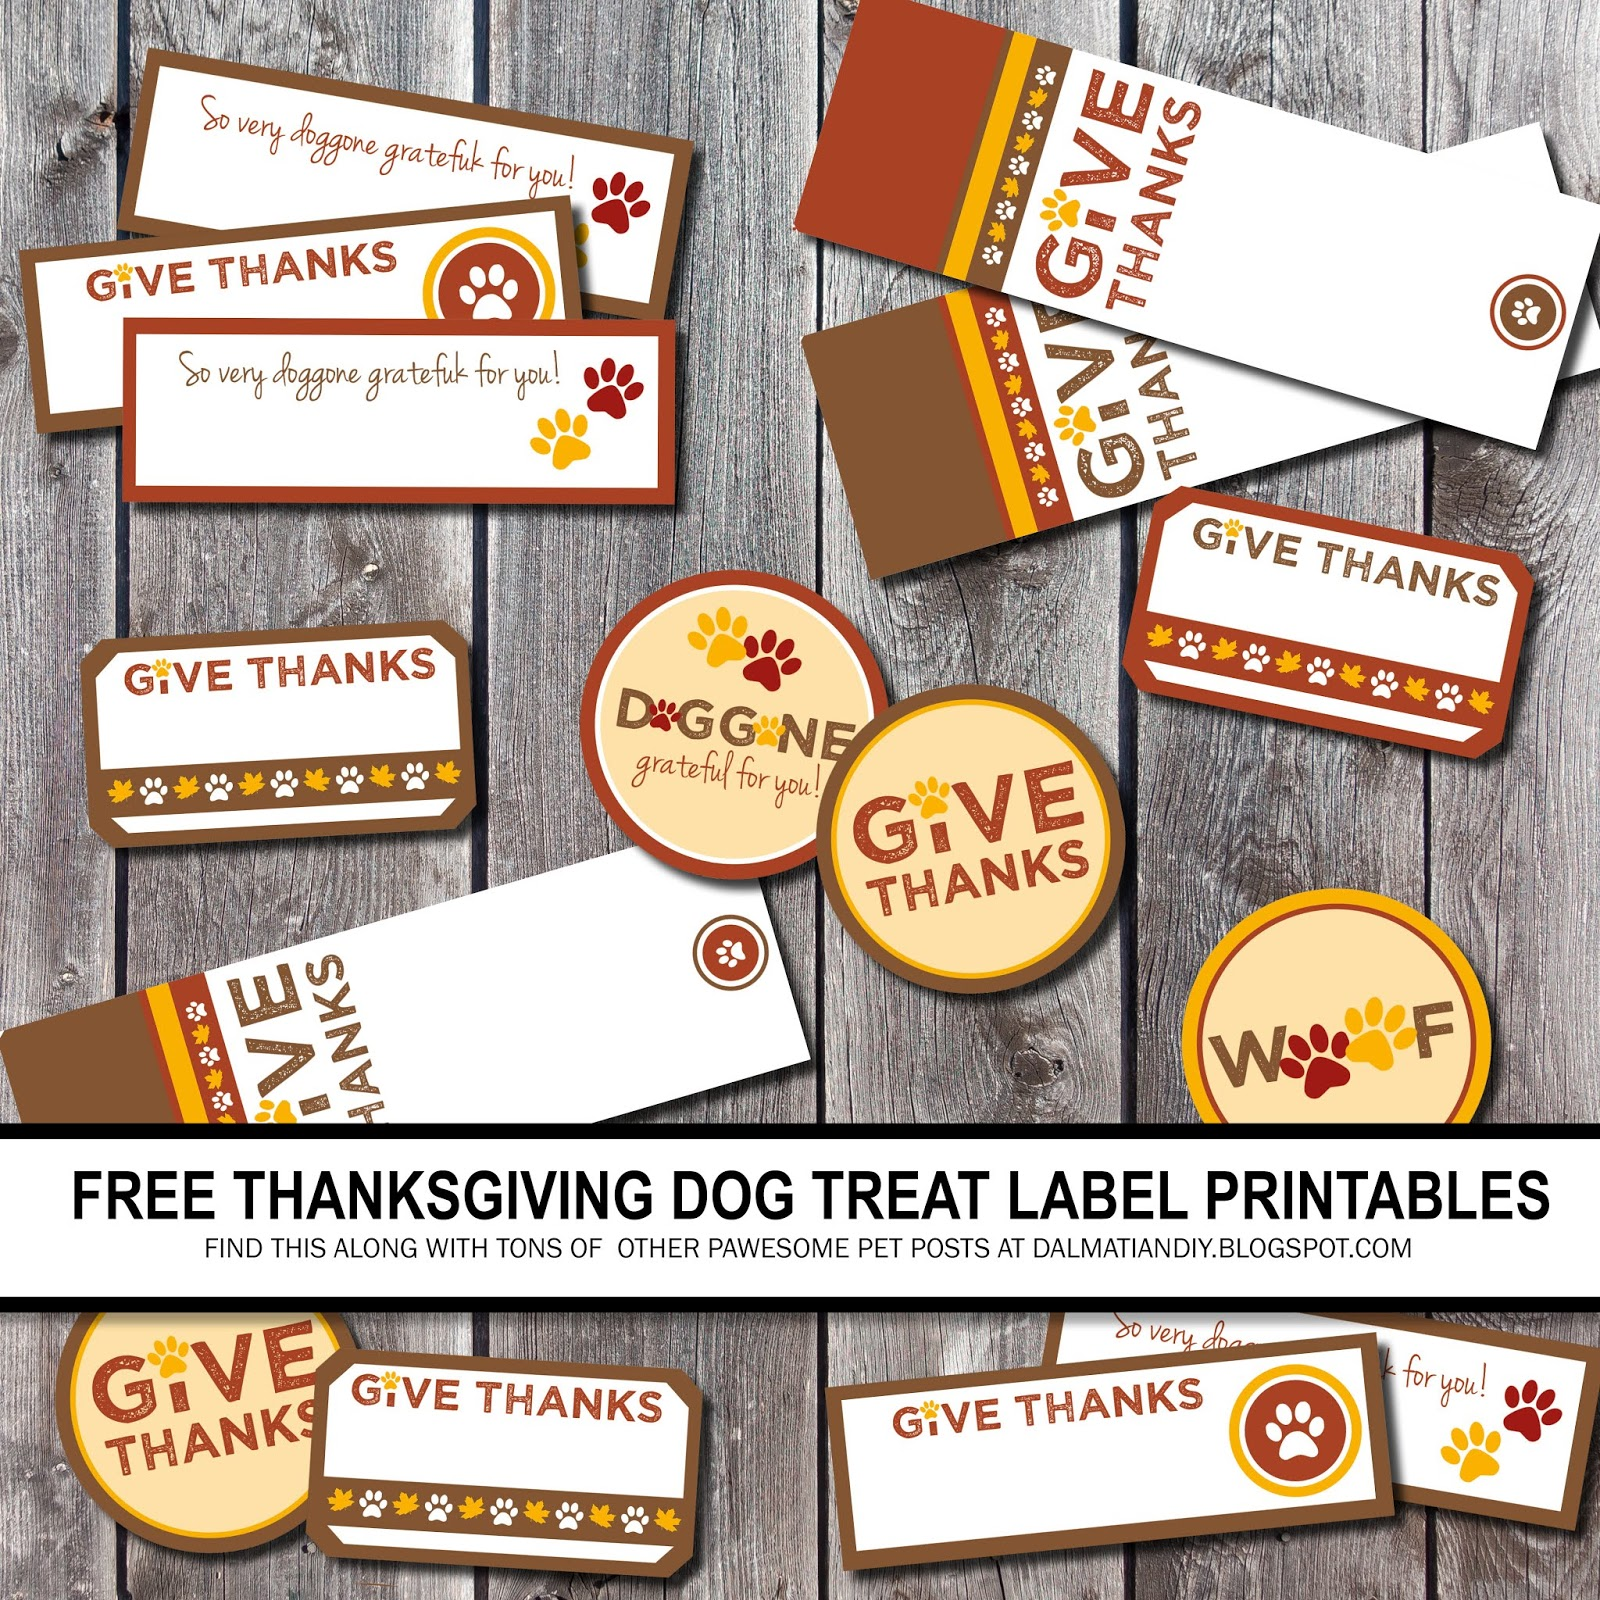 picture relating to Free Printable Thanksgiving Tags referred to as Cost-free Printable Thanksgiving Doggy Take care of Tags and Labels